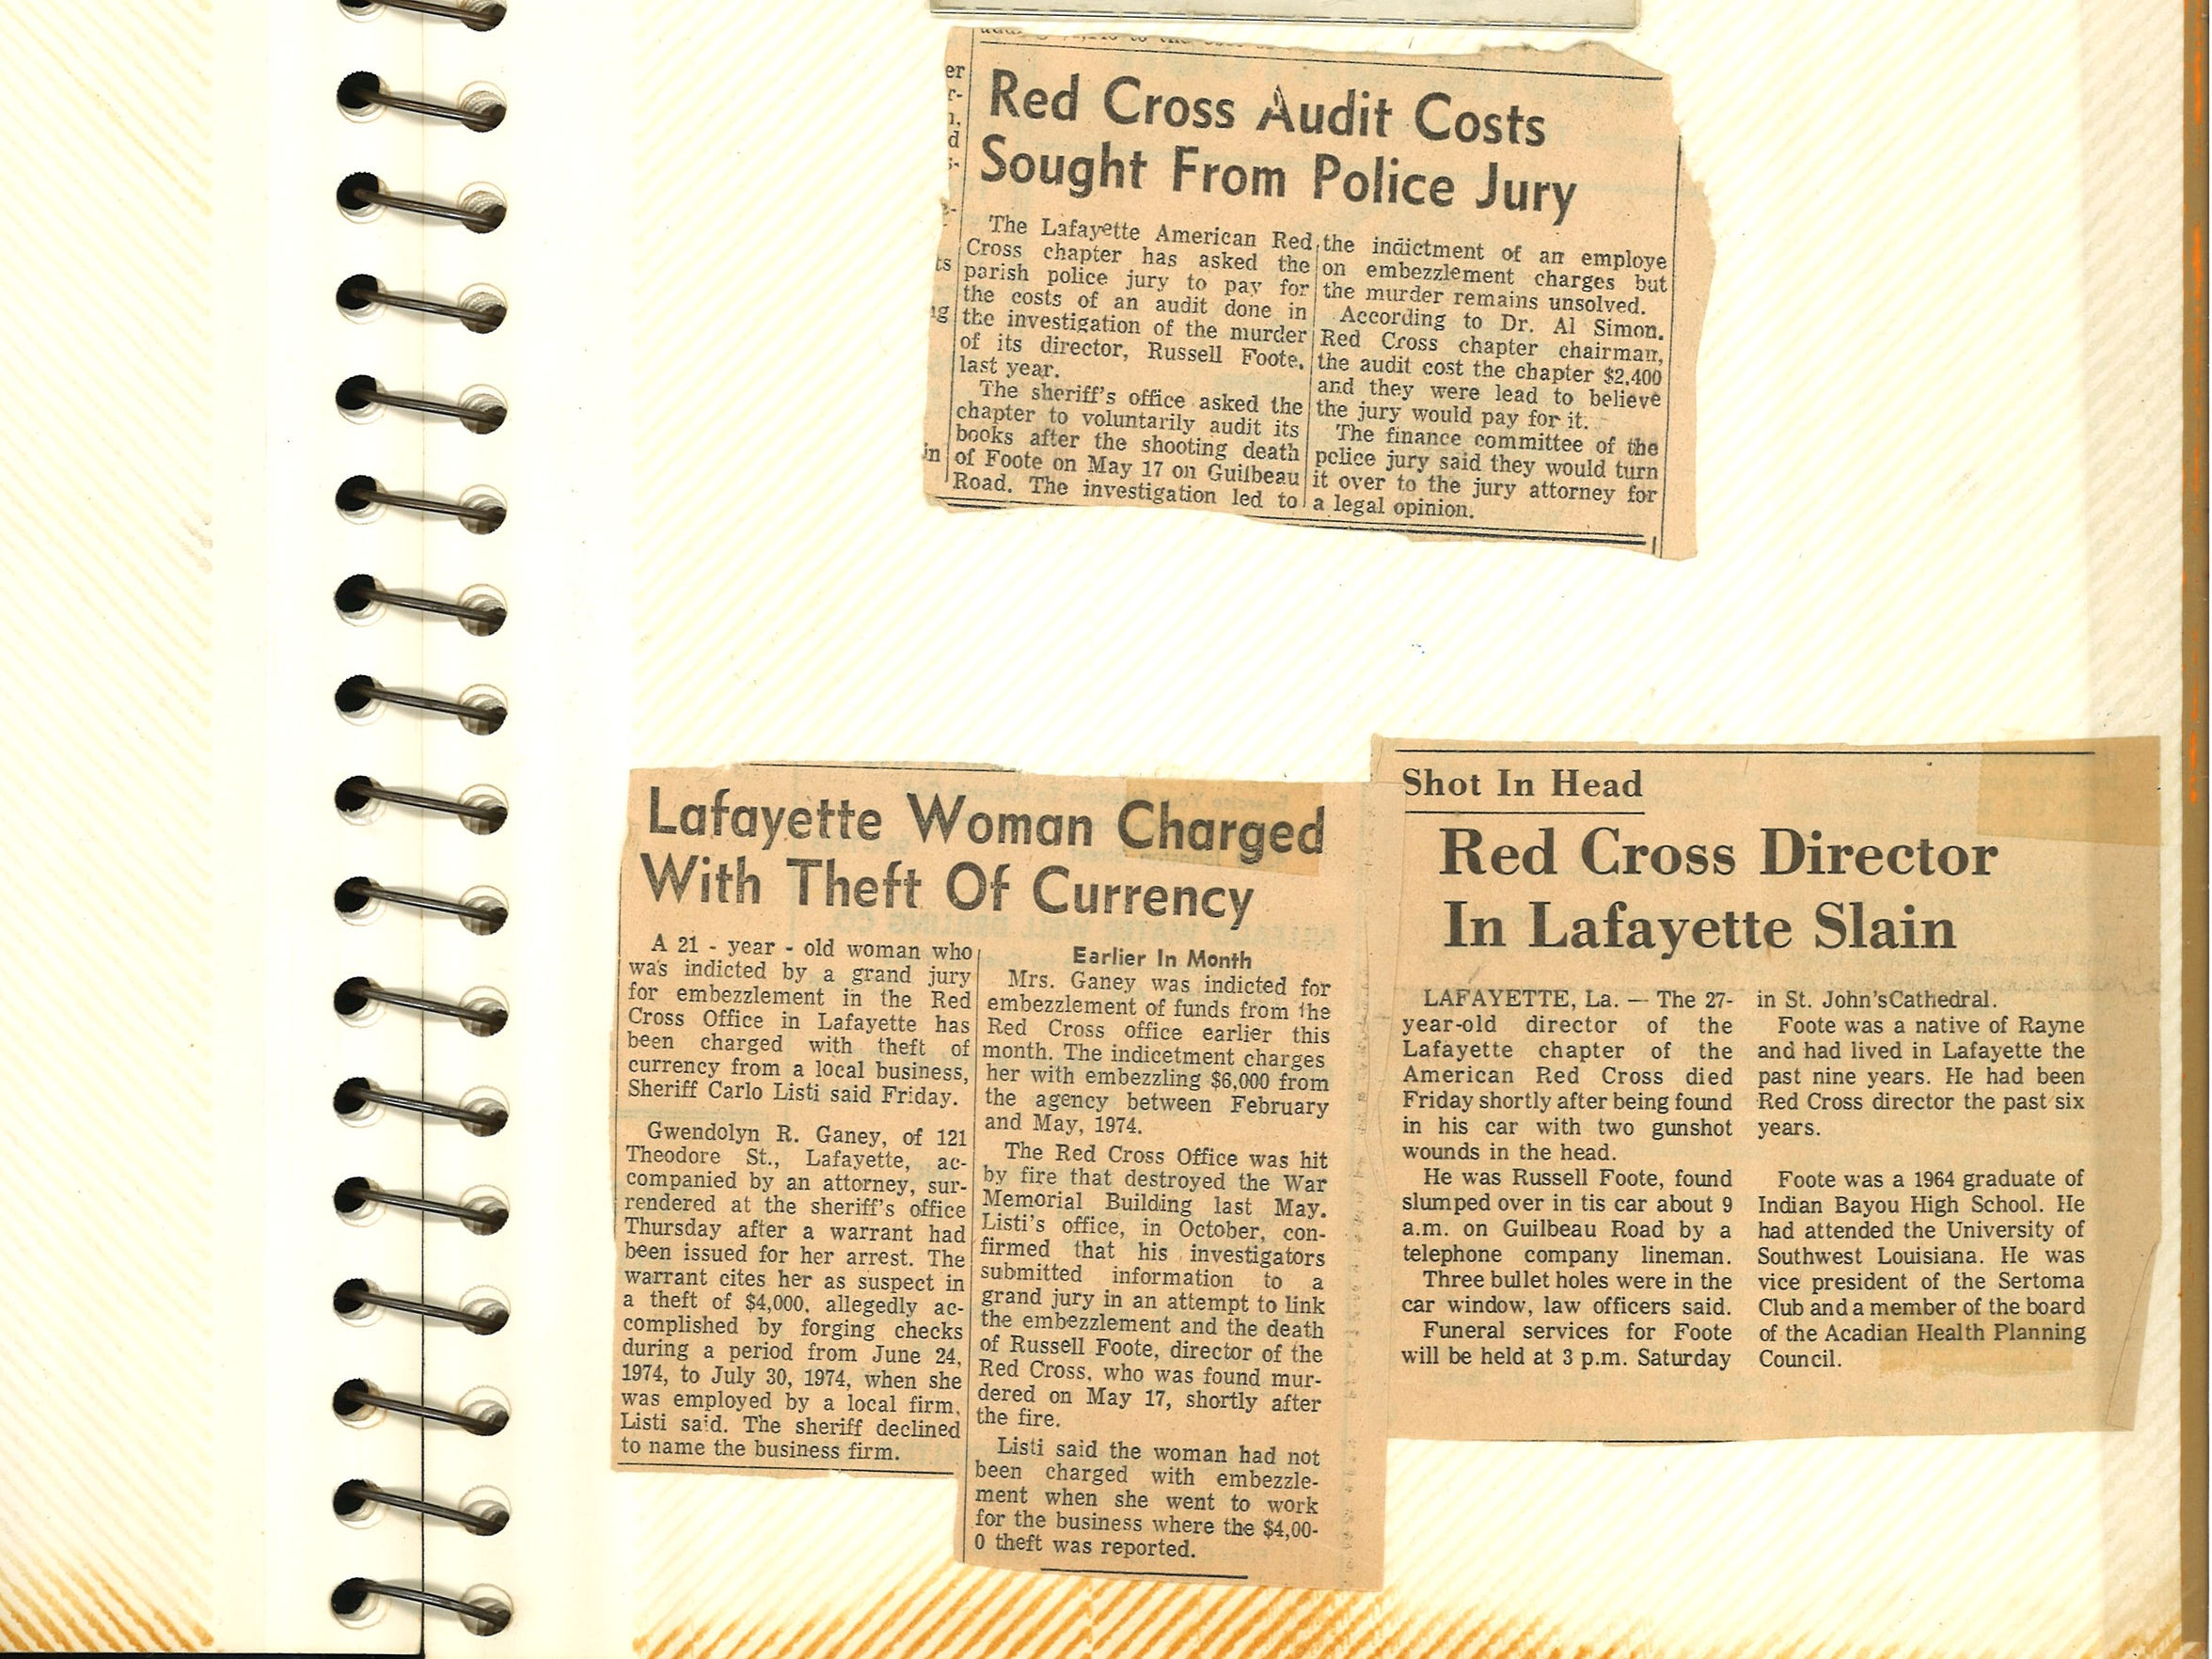 News clippings from 1974.